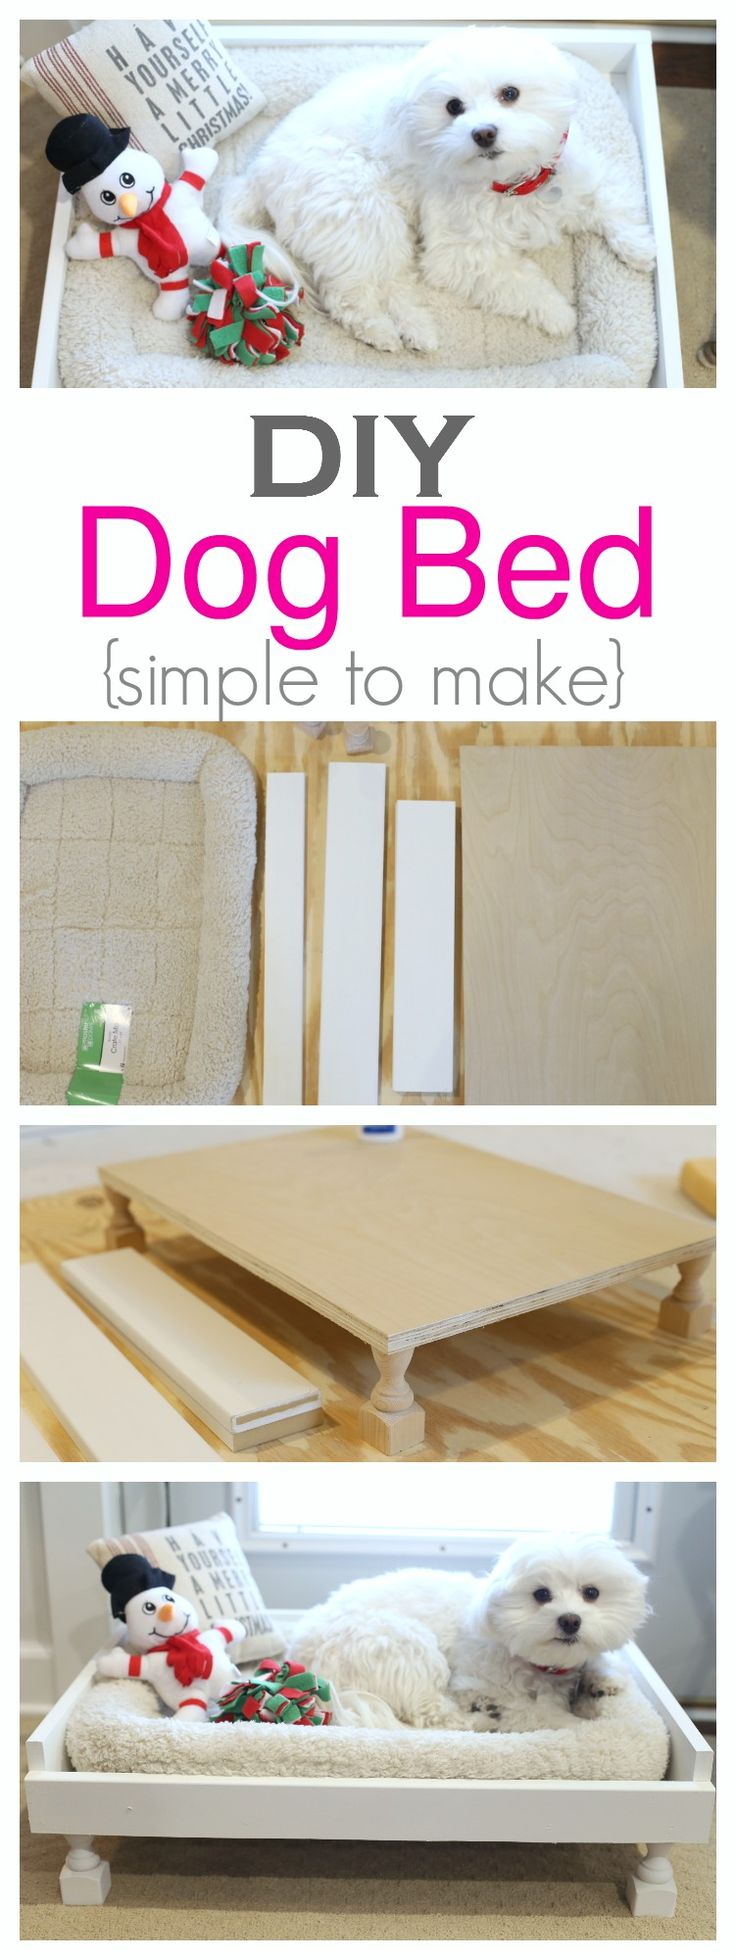 344 Best Craft Time And DIY Projects Images On Pinterest